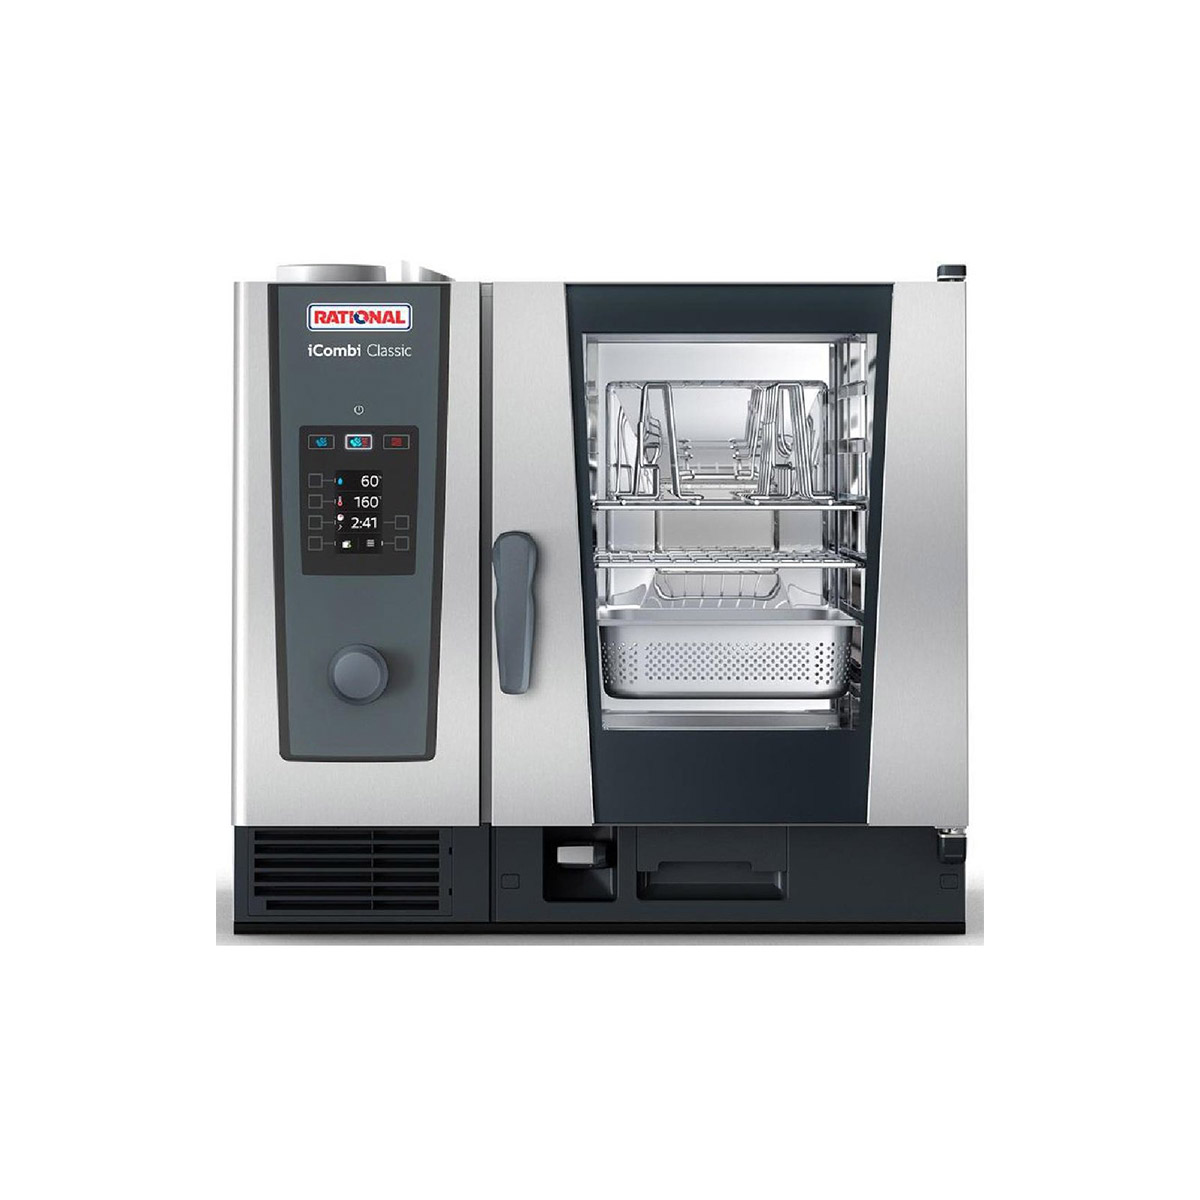 Rational iCombi Classic 6-1/1/E 6 Grid 1/1GN Electric Combination Oven